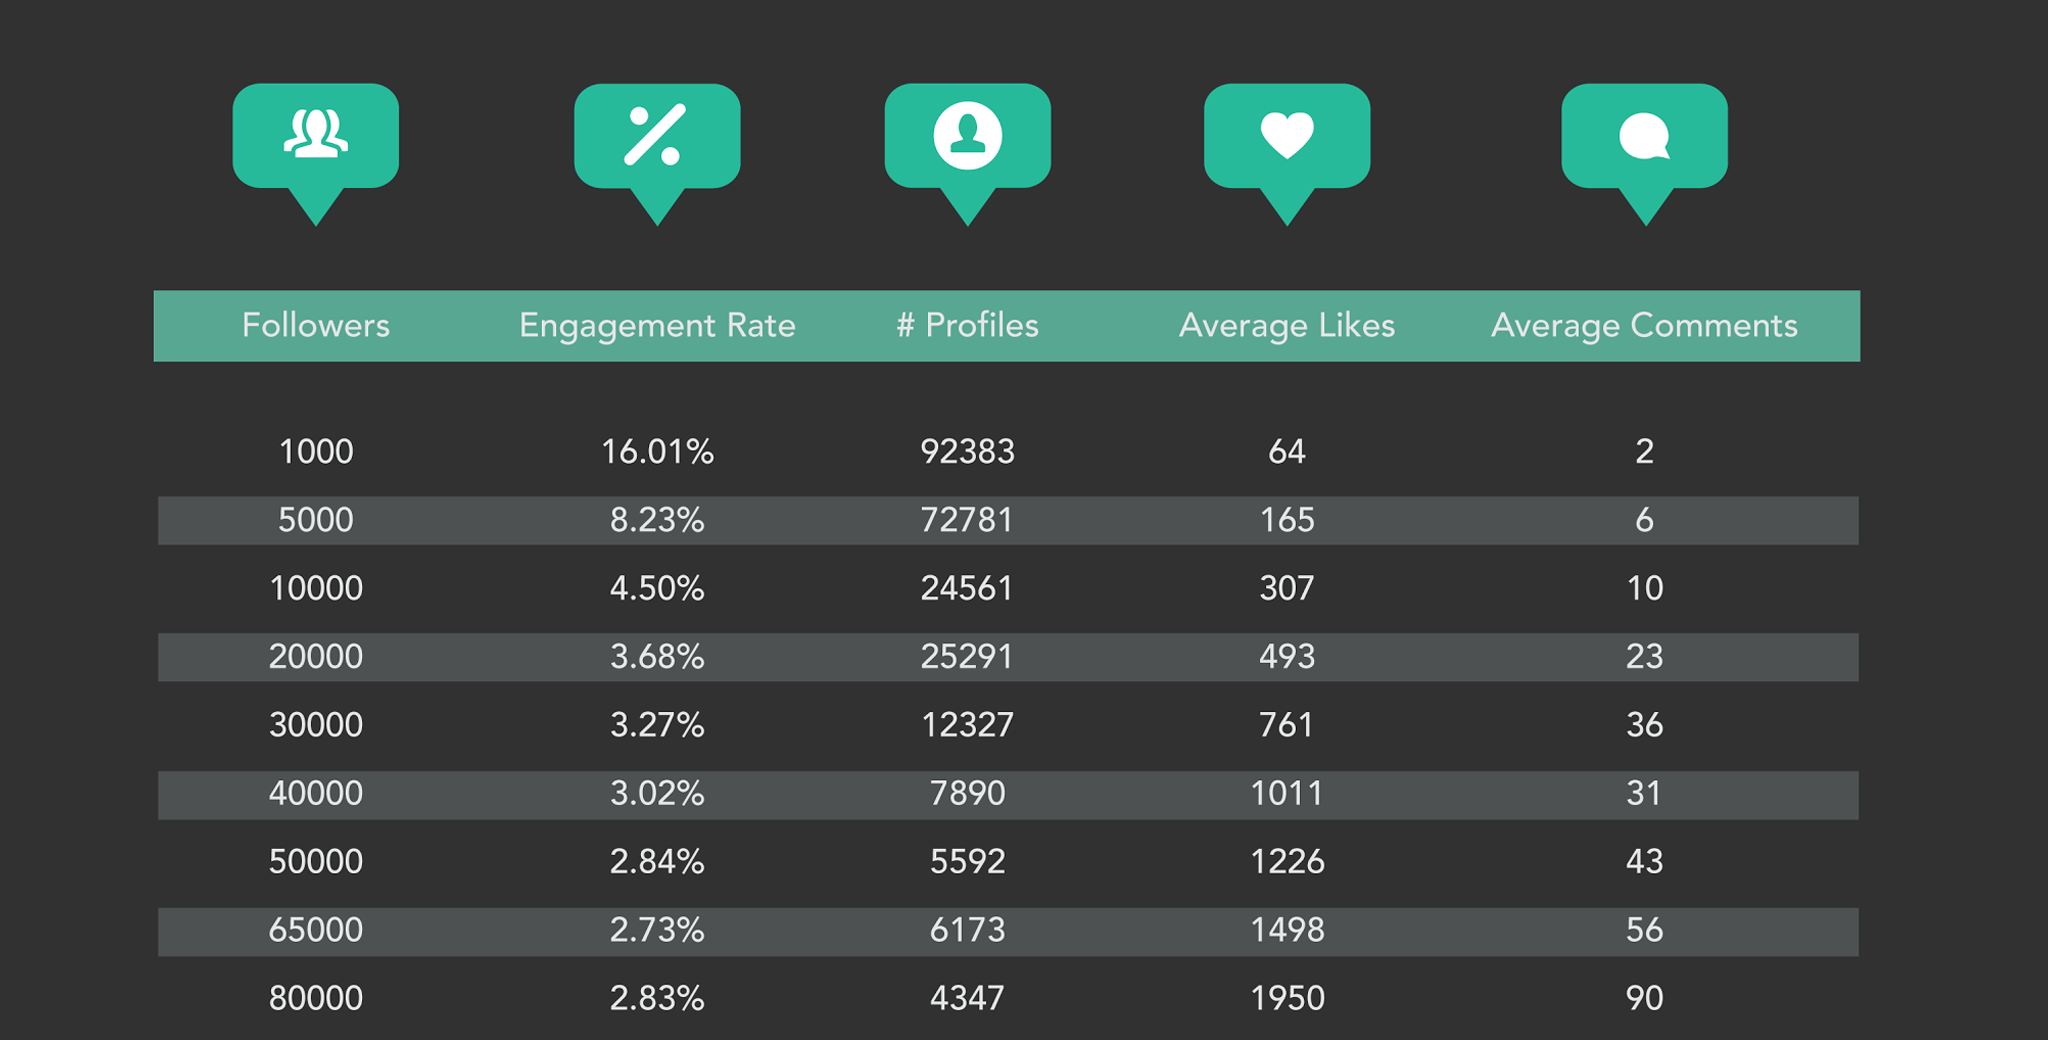 An engagement rate analysis of 282 000 Instagram accounts